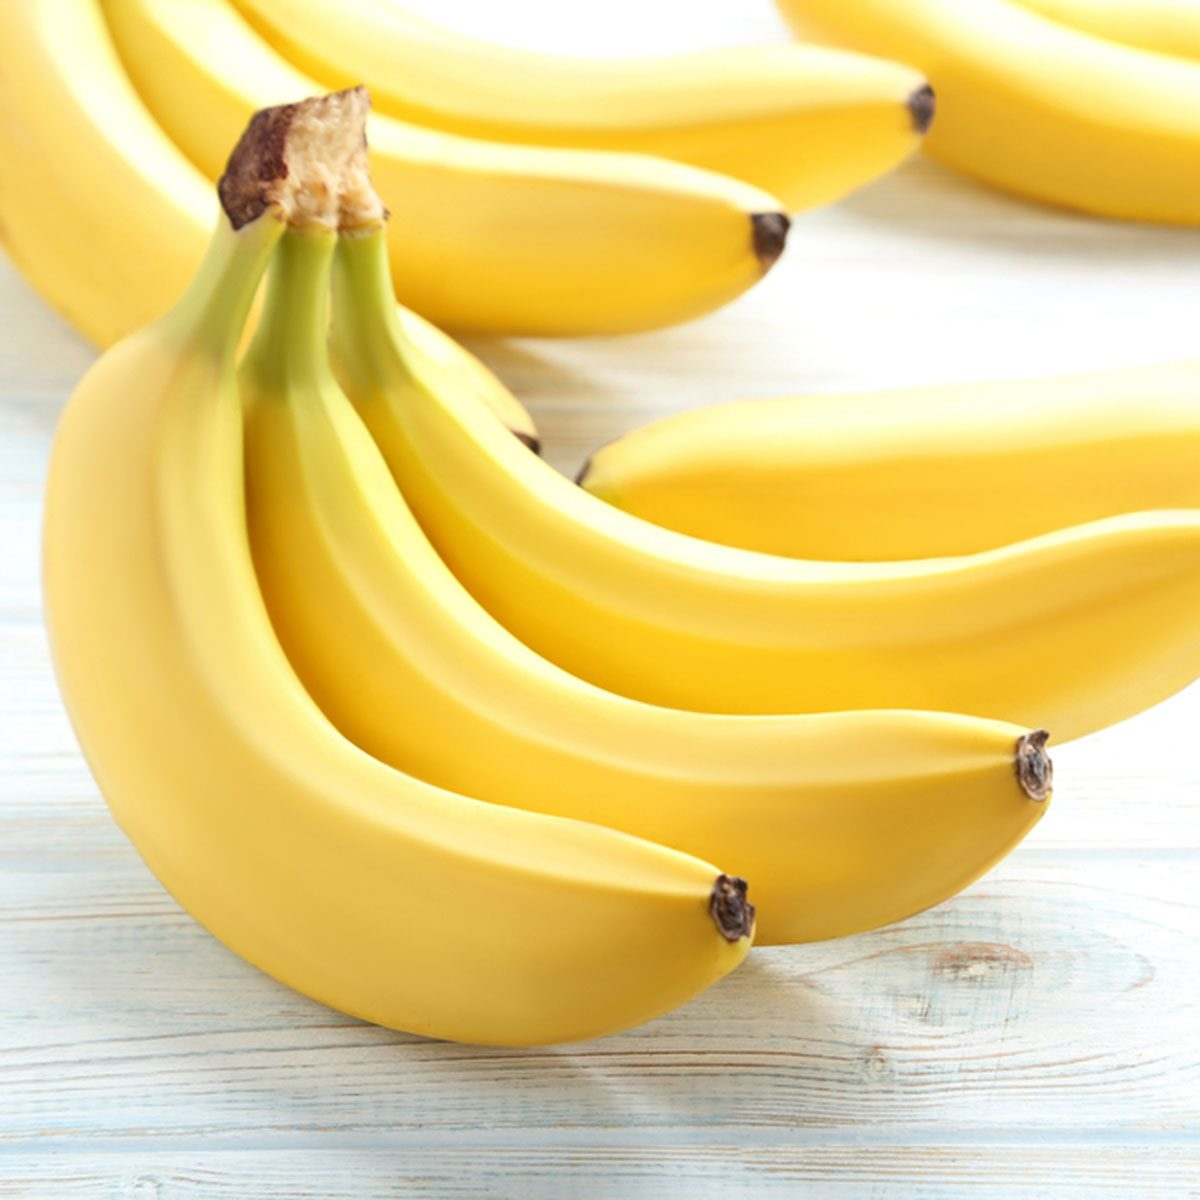 Sweet bananas on white wooden table; Shutterstock ID 626207750; Job (TFH, TOH, RD, BNB, CWM, CM): Taste of Home